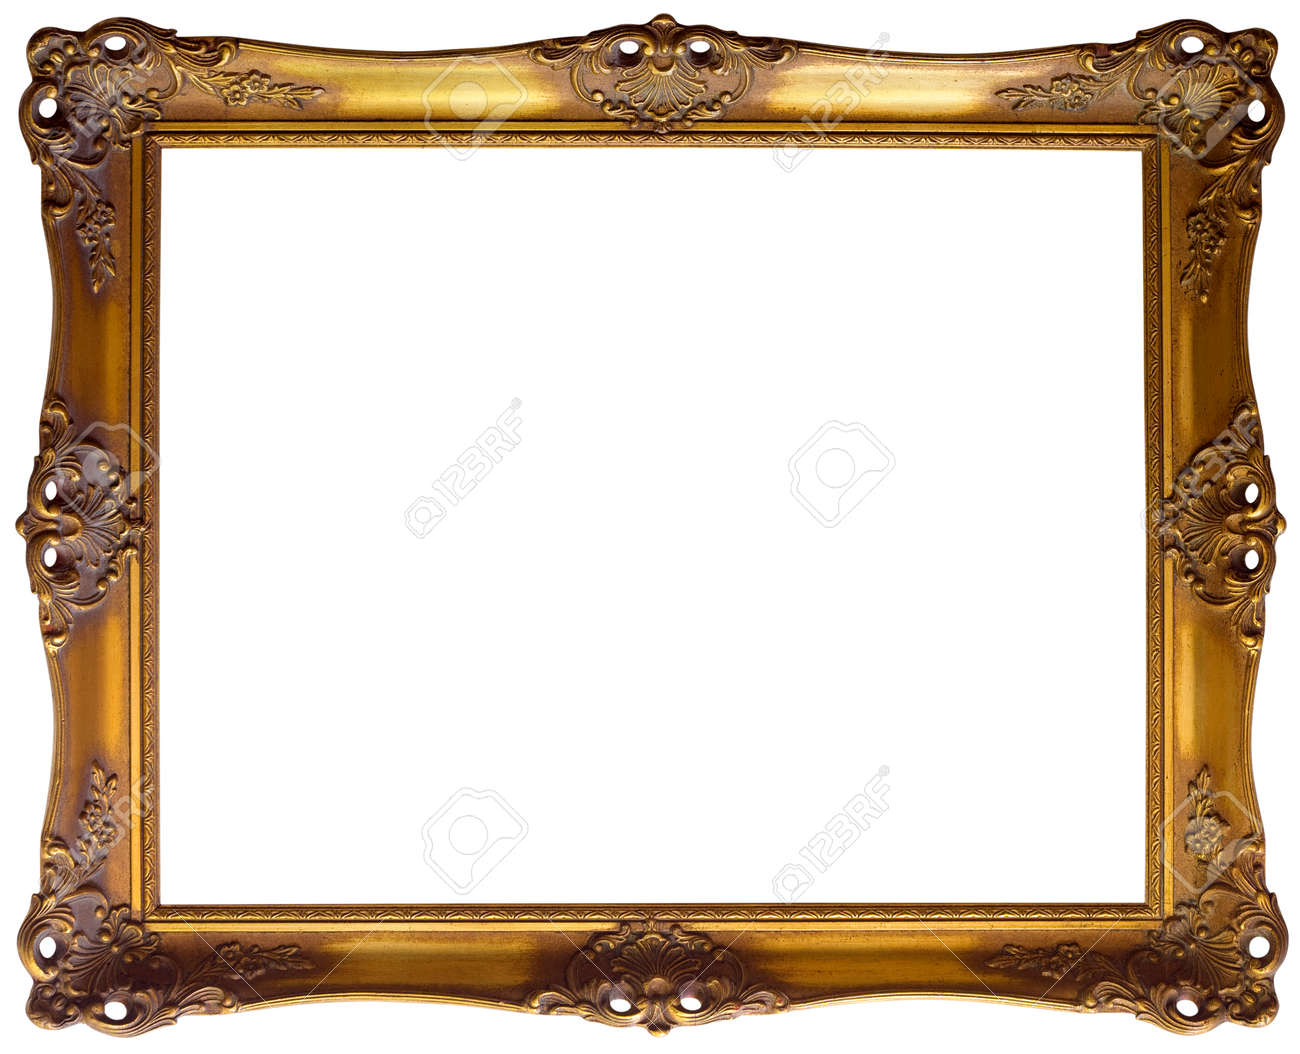 ornate golden baroque frame clipping path stock photo picture and